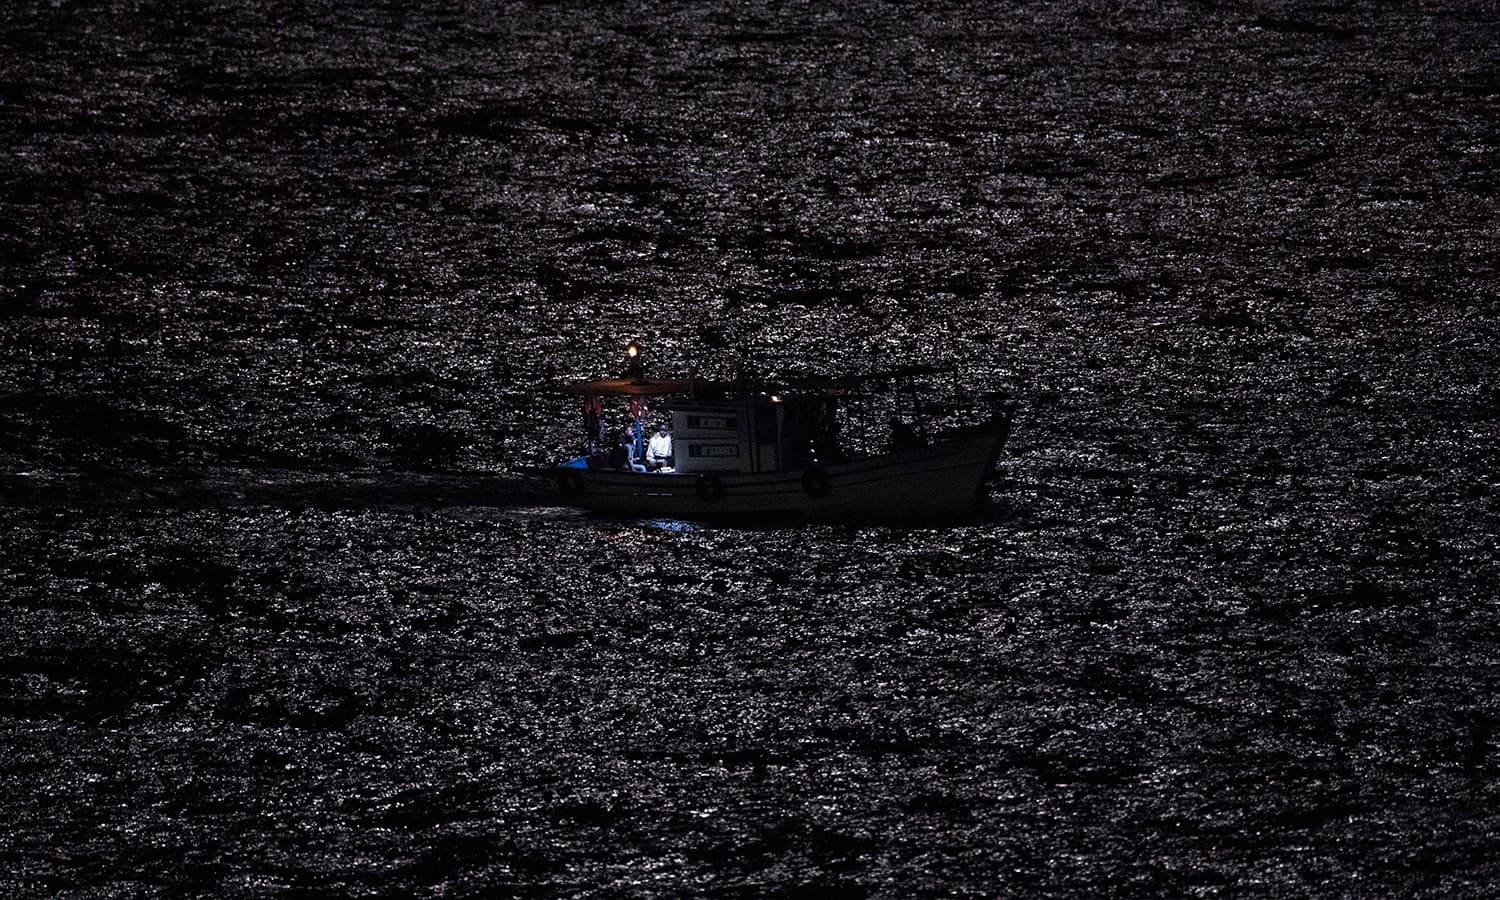 A fishermen boat crosses the reflection of the moonlight during the moon eclipse in Rio de Janeiro Brazil. — AFP